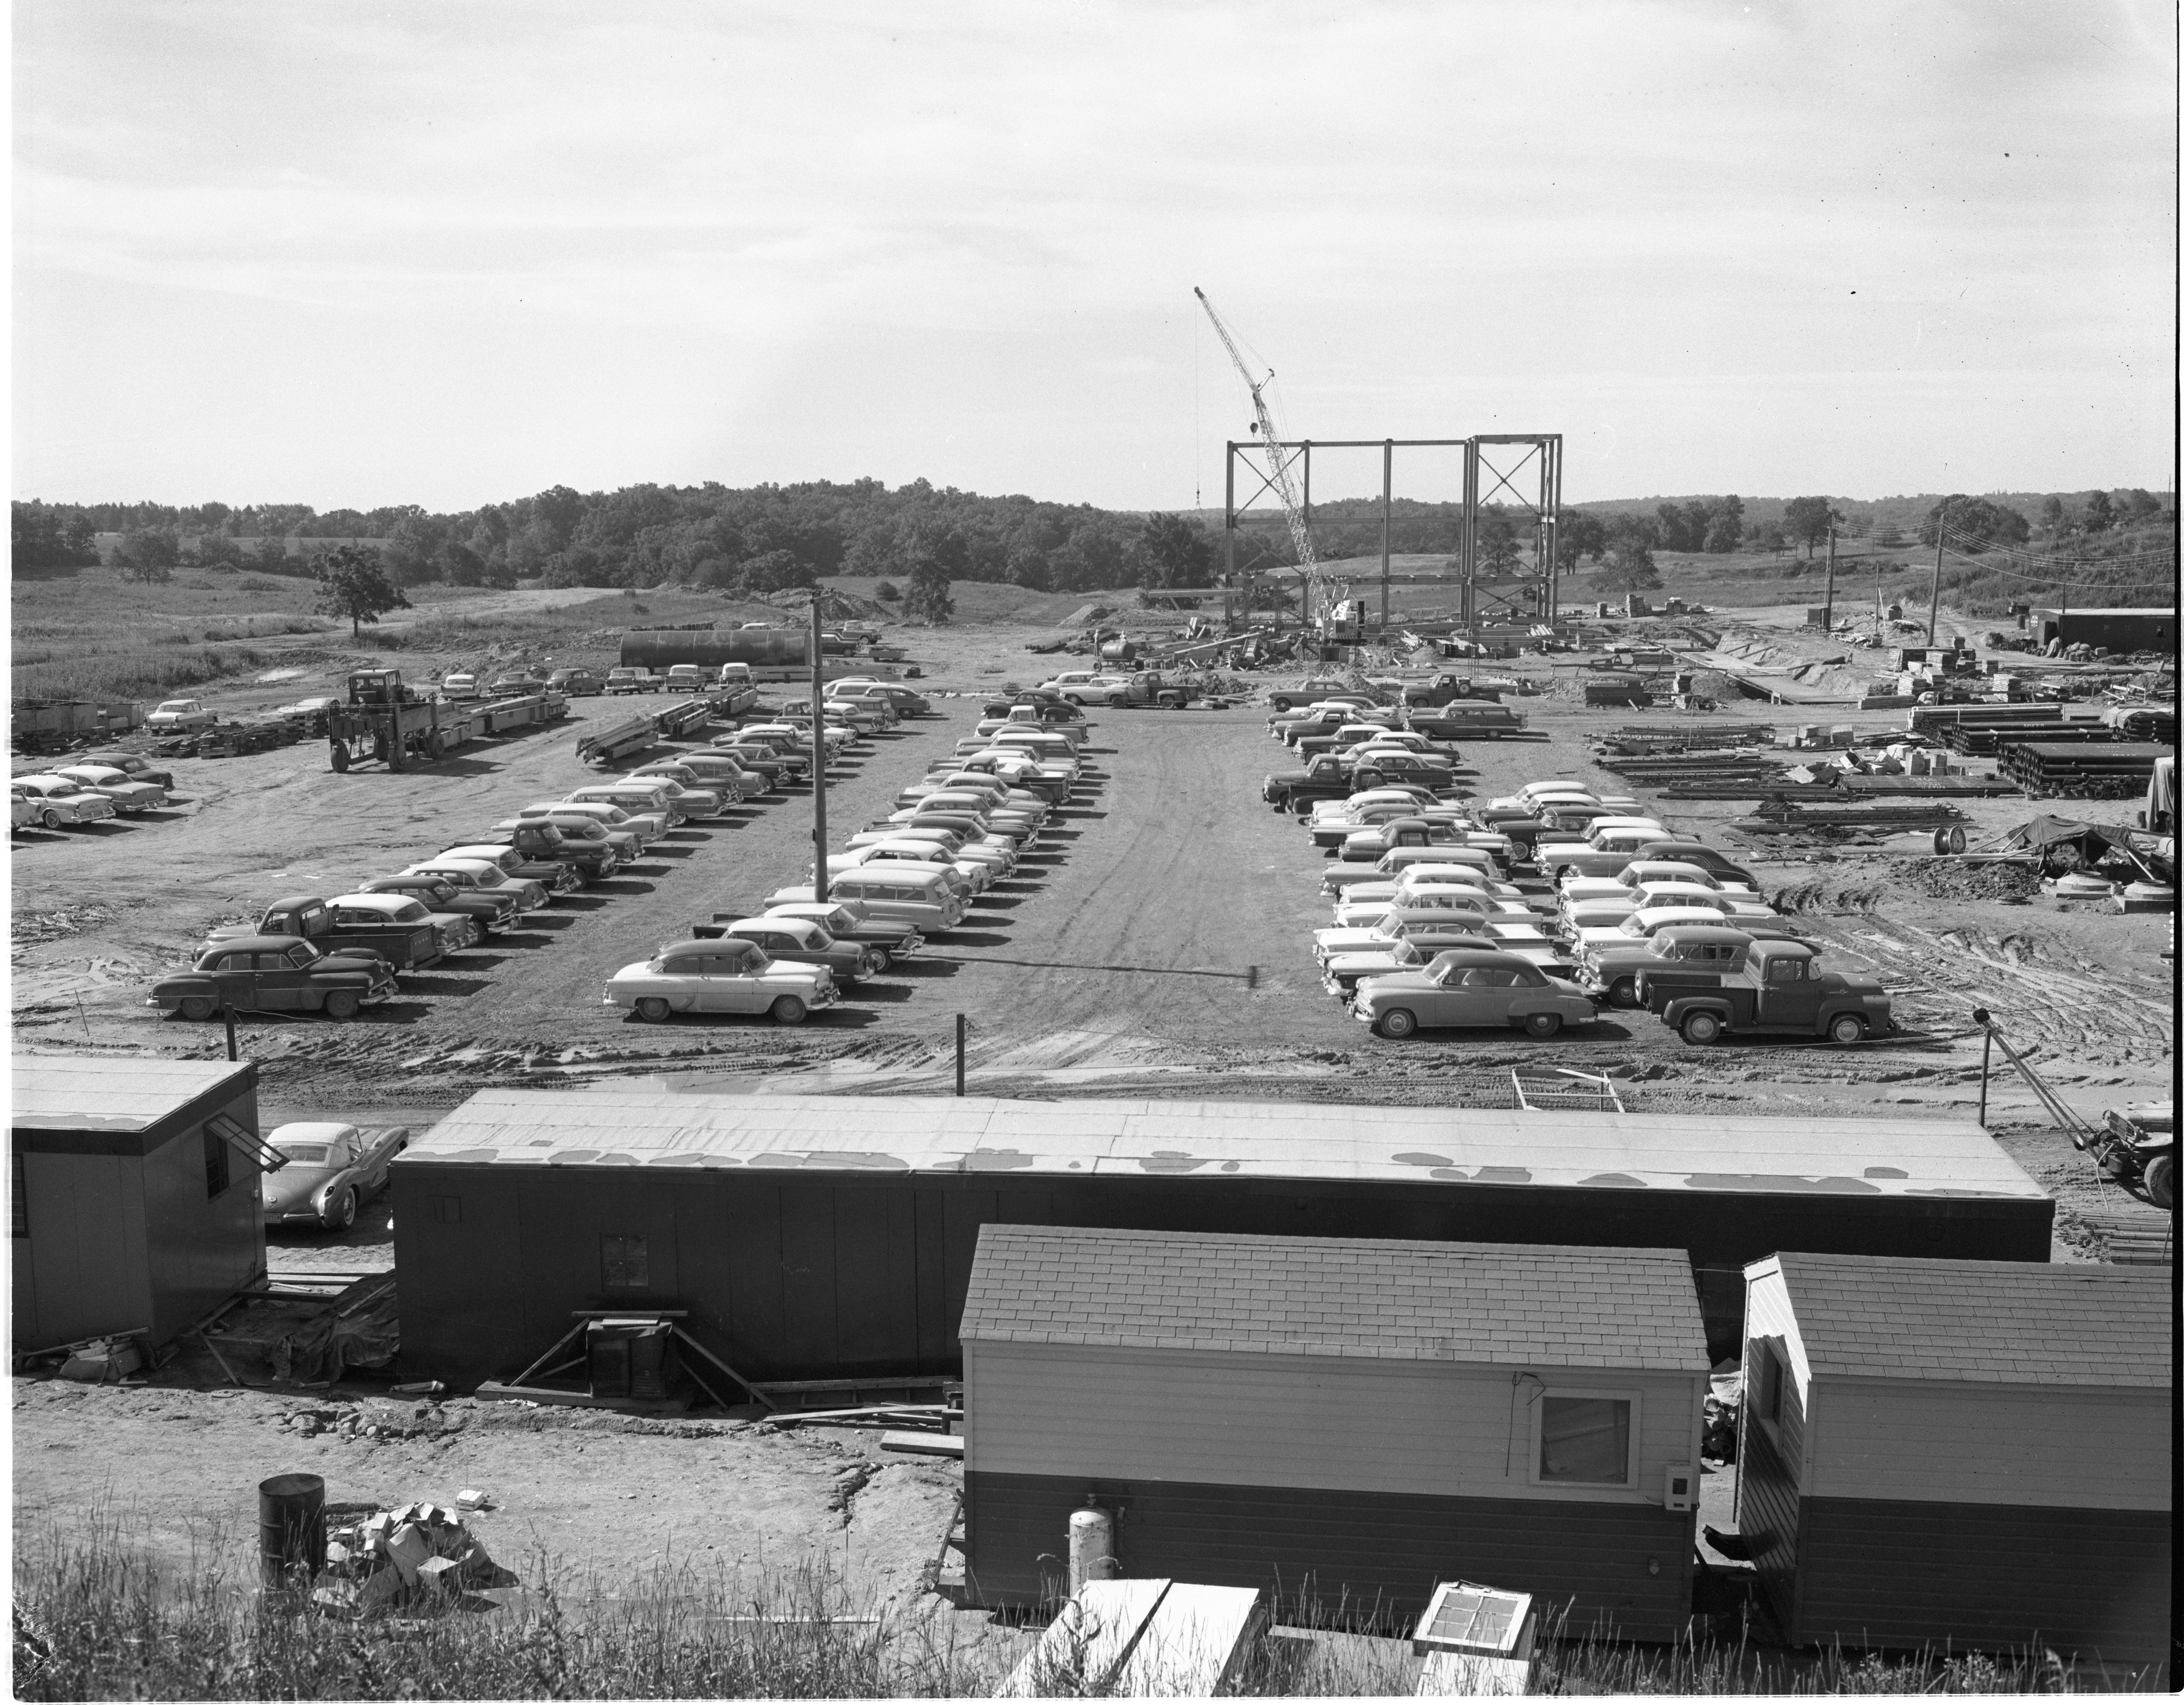 Parking Lot Filled With Cars Of Building & Construction Workers At The Ann Arbor Parke Davis Research Center Construction Site, August 1958 image